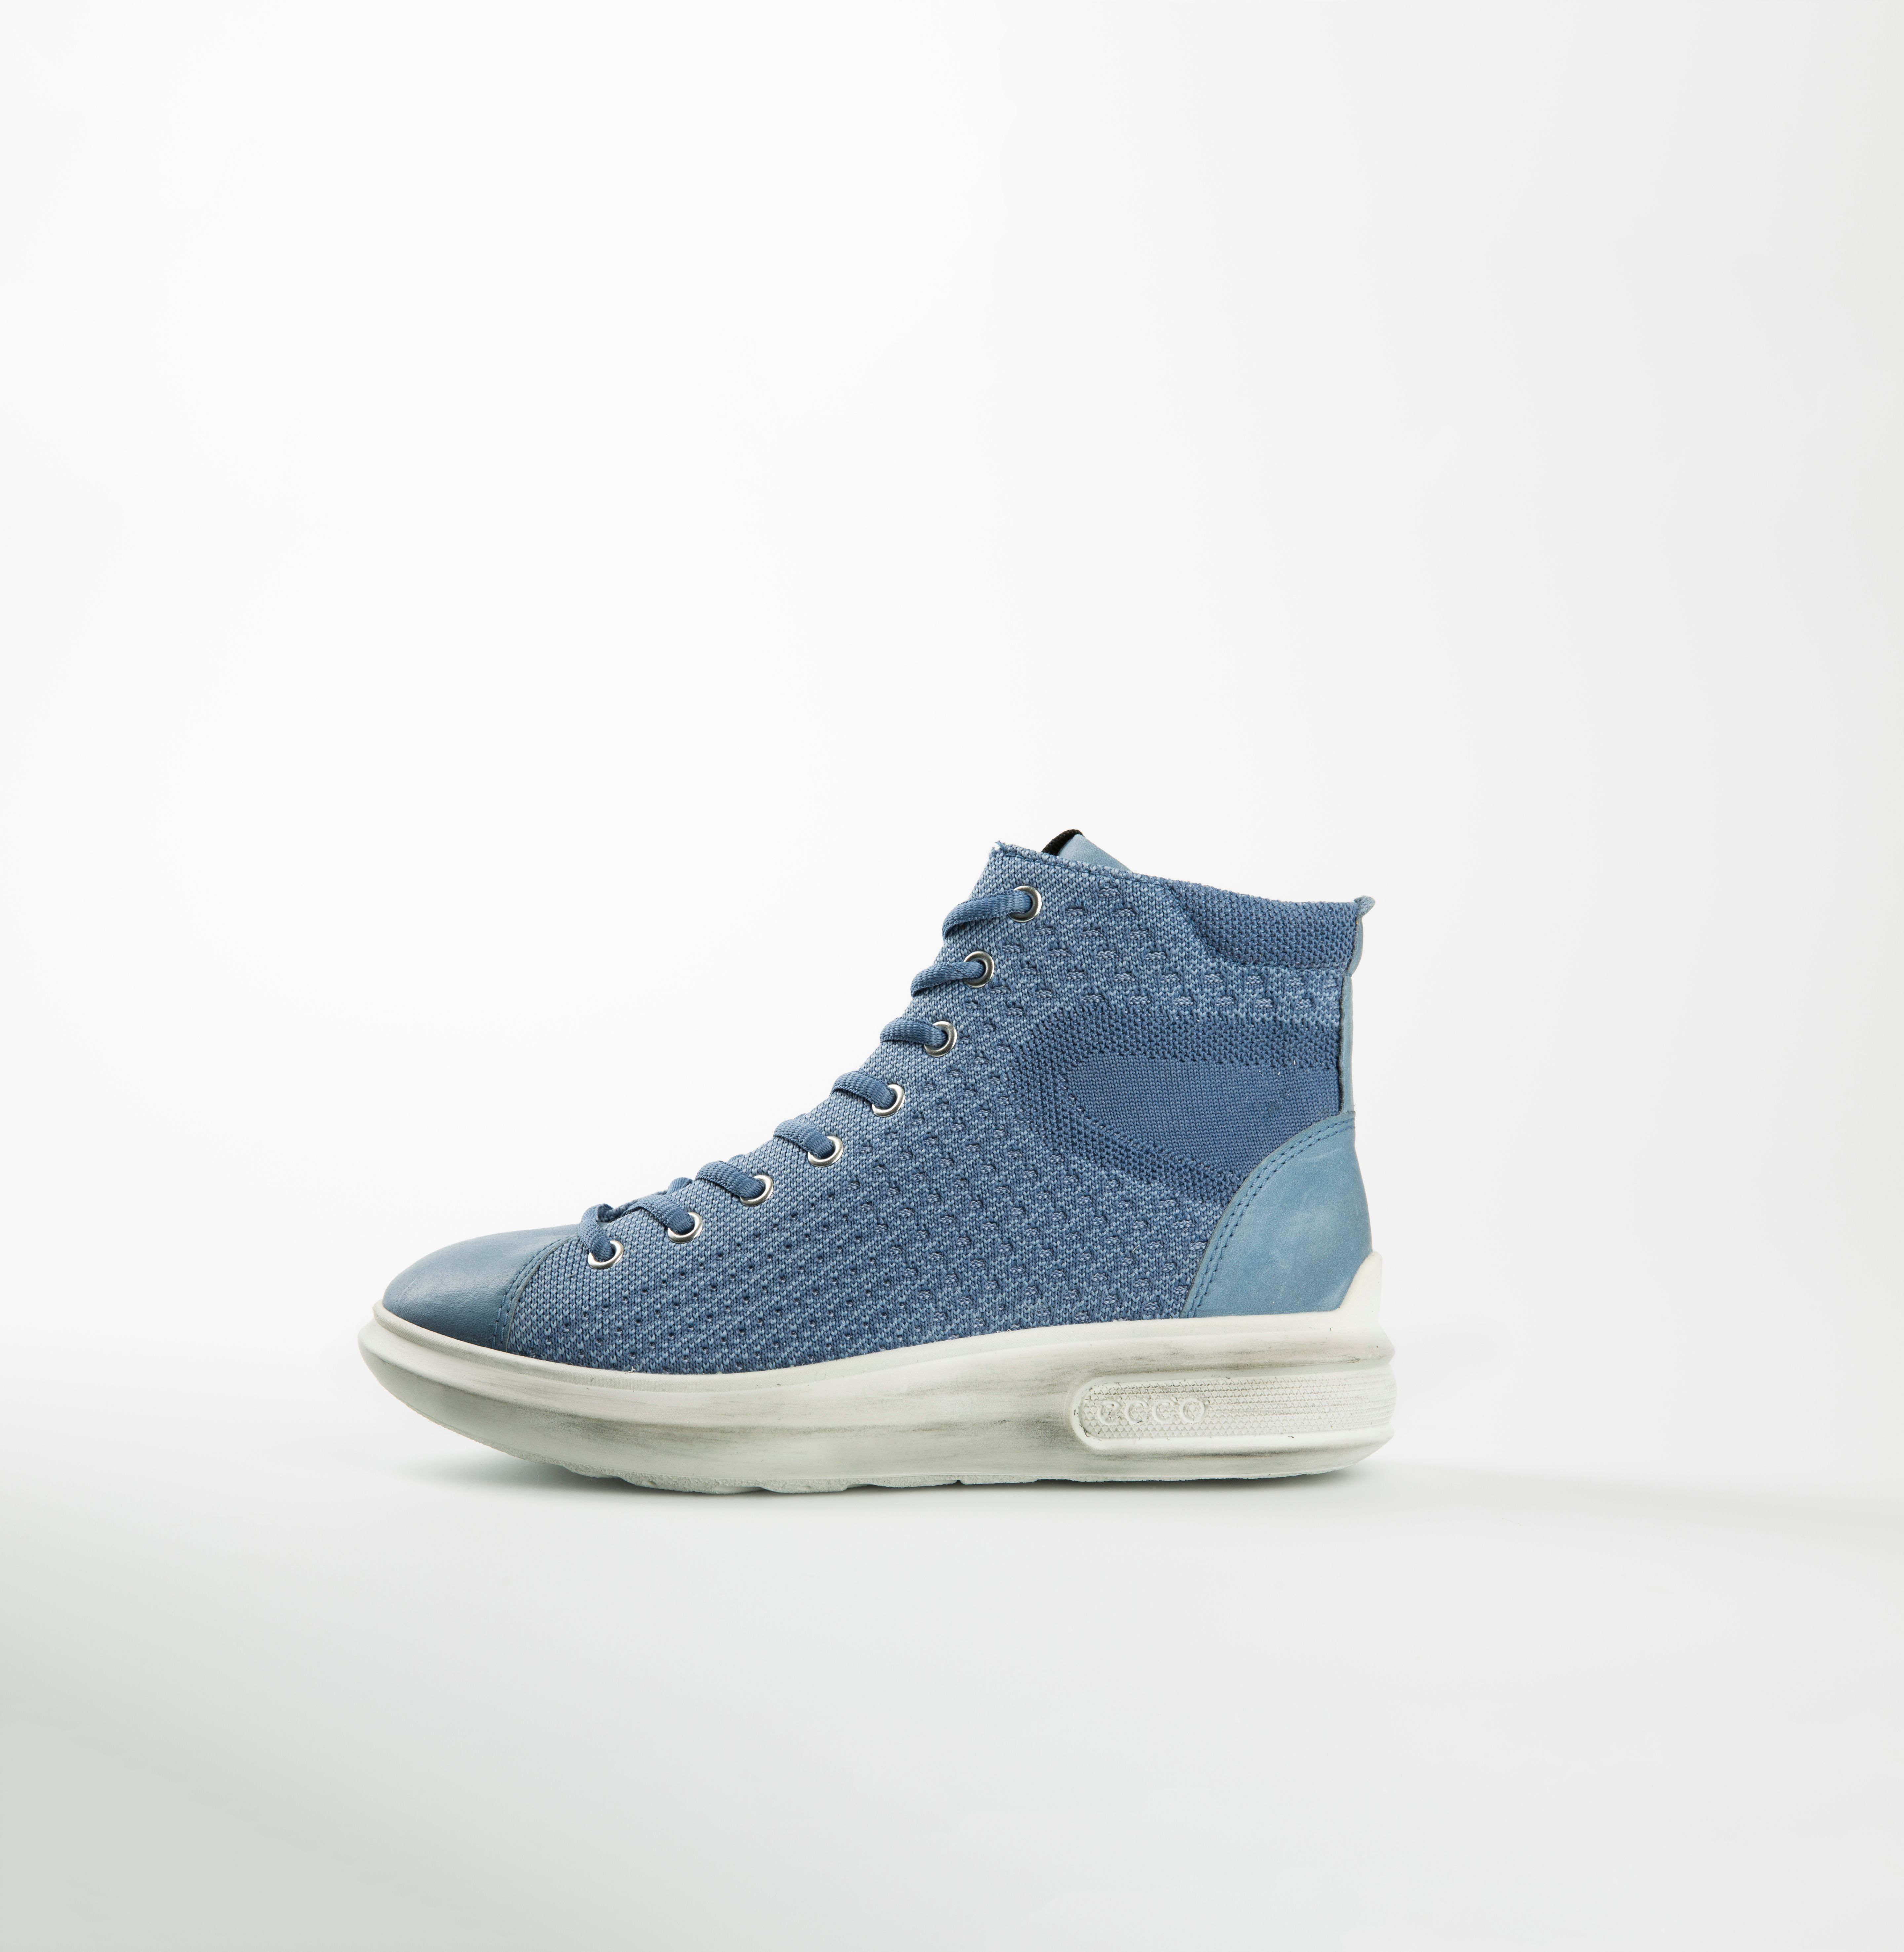 Midsole Cleaning Kit - ECCO.com